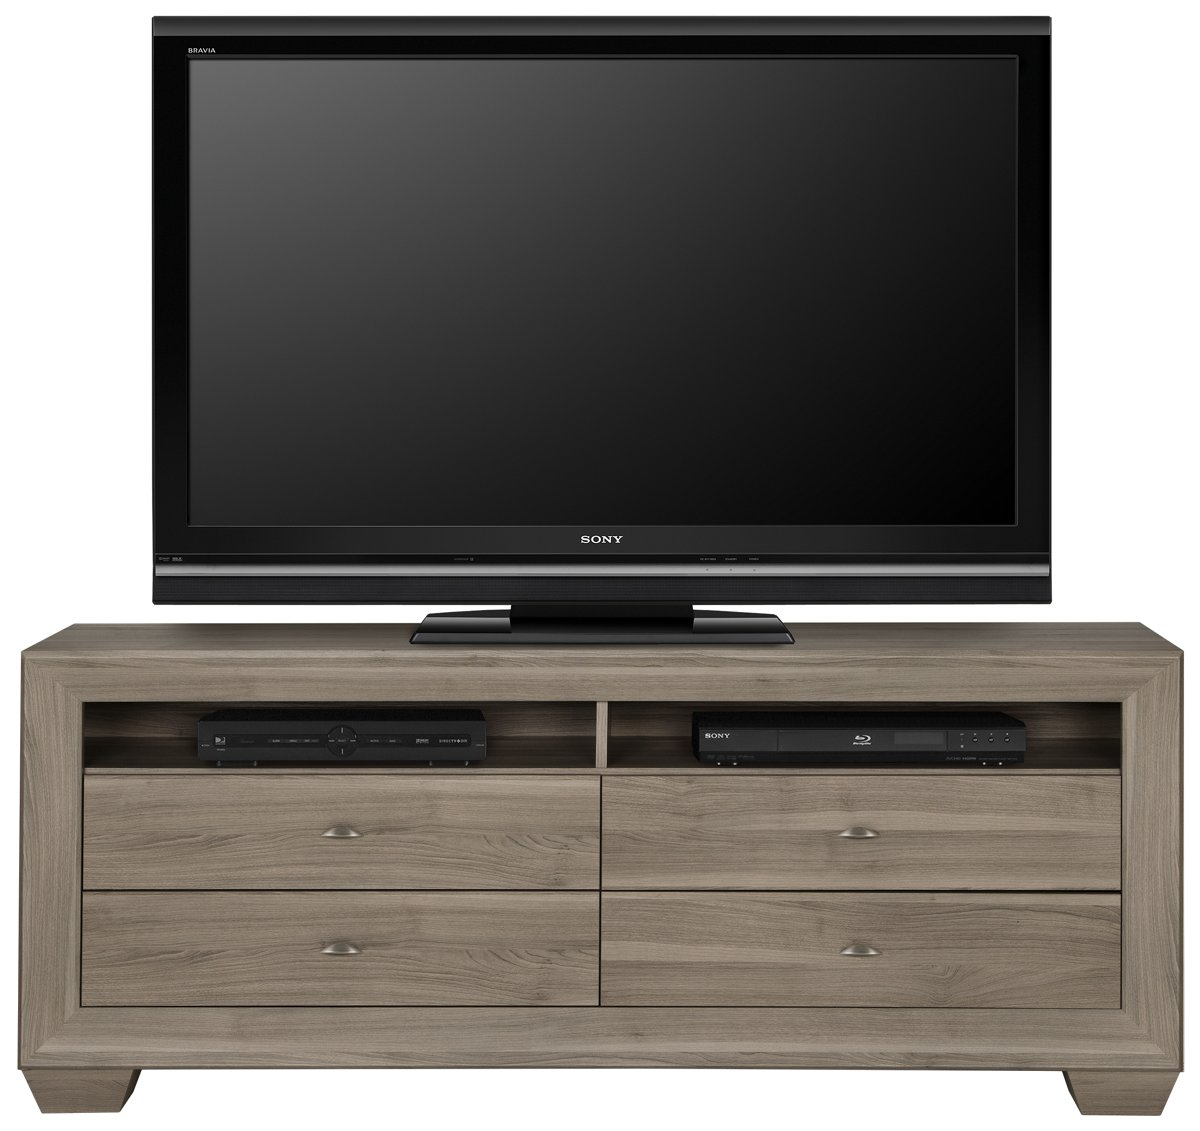 Adele2 Light Tone 70 Quot Tv Stand Entertainment Centers